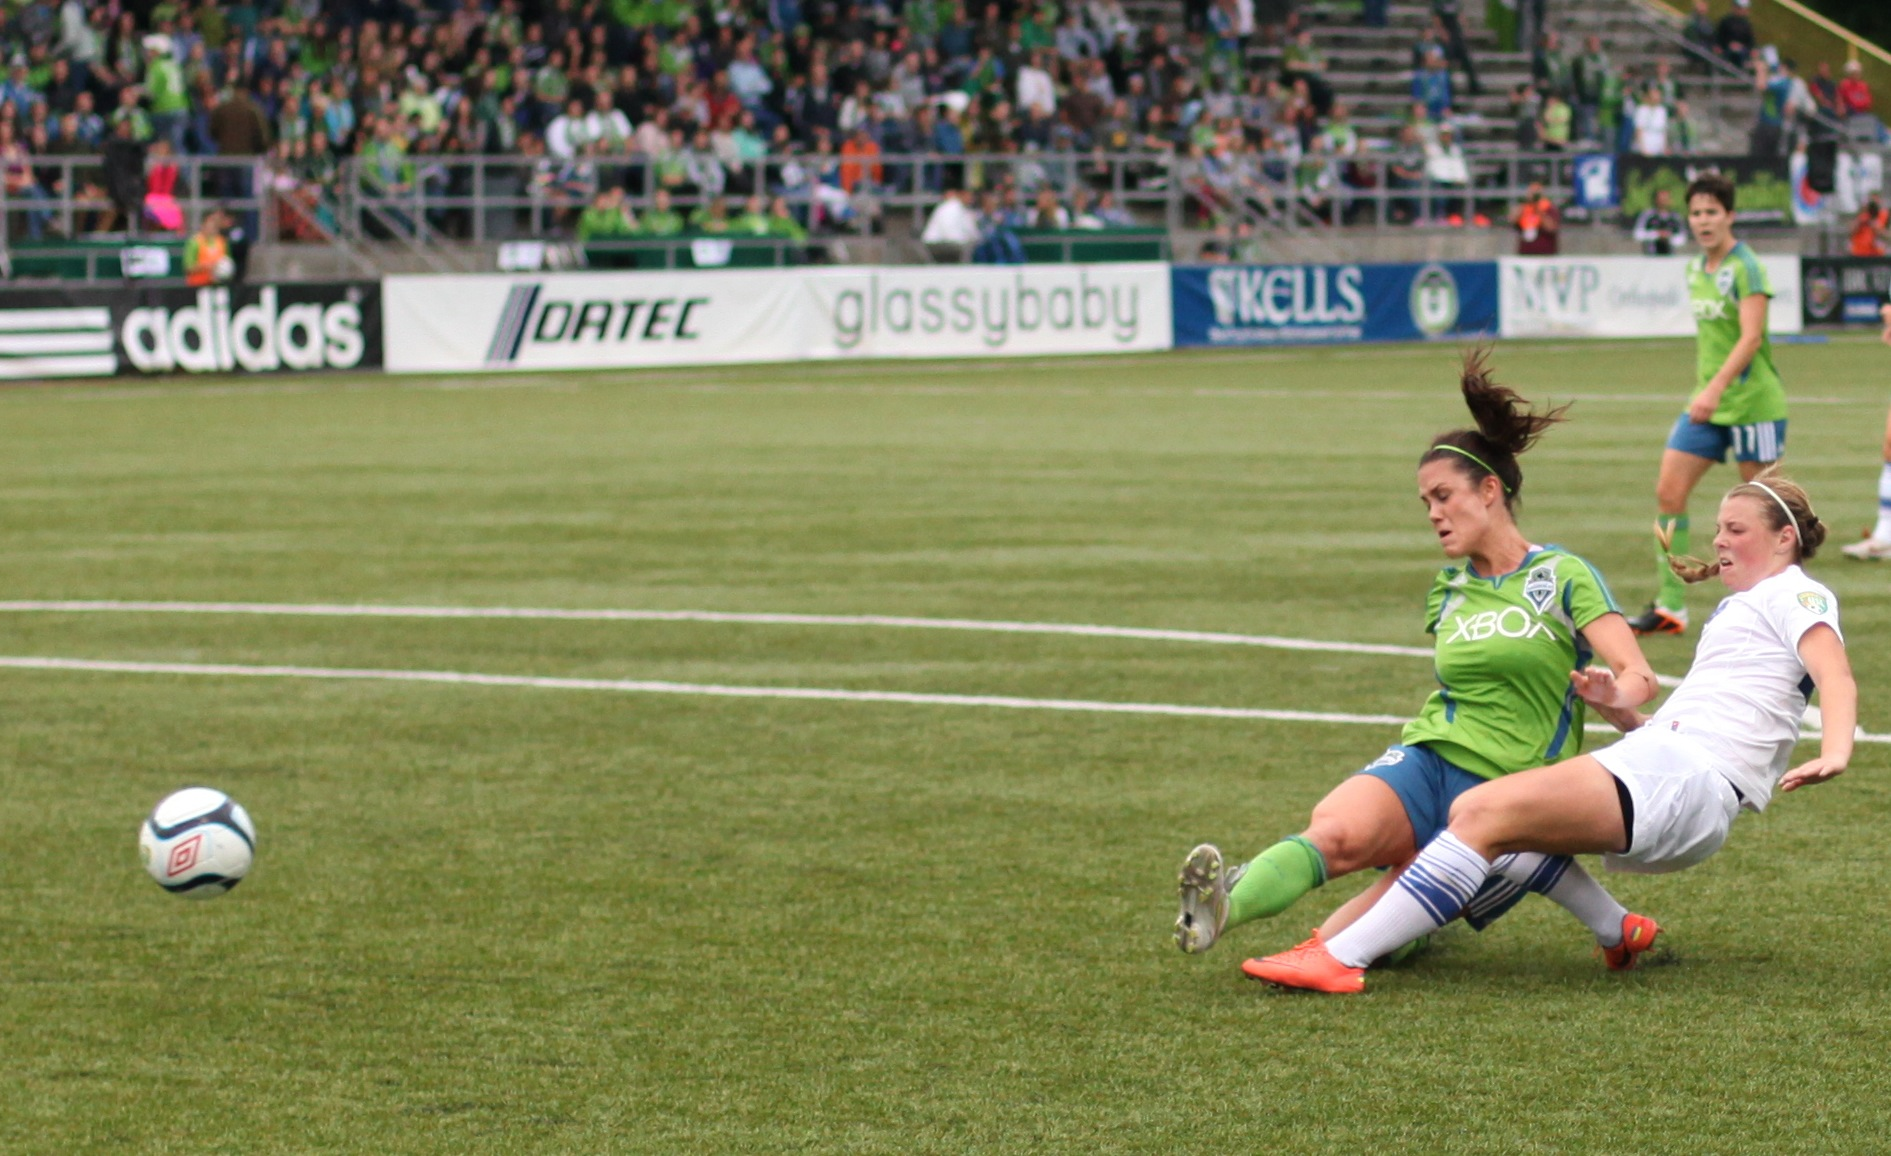 Seattle Reign FC announced defender Kate Deines (left) as one of its five free-agent signings on Monday before the start of the inaugural NWSL season. (Photo: clappstar/Flickr)